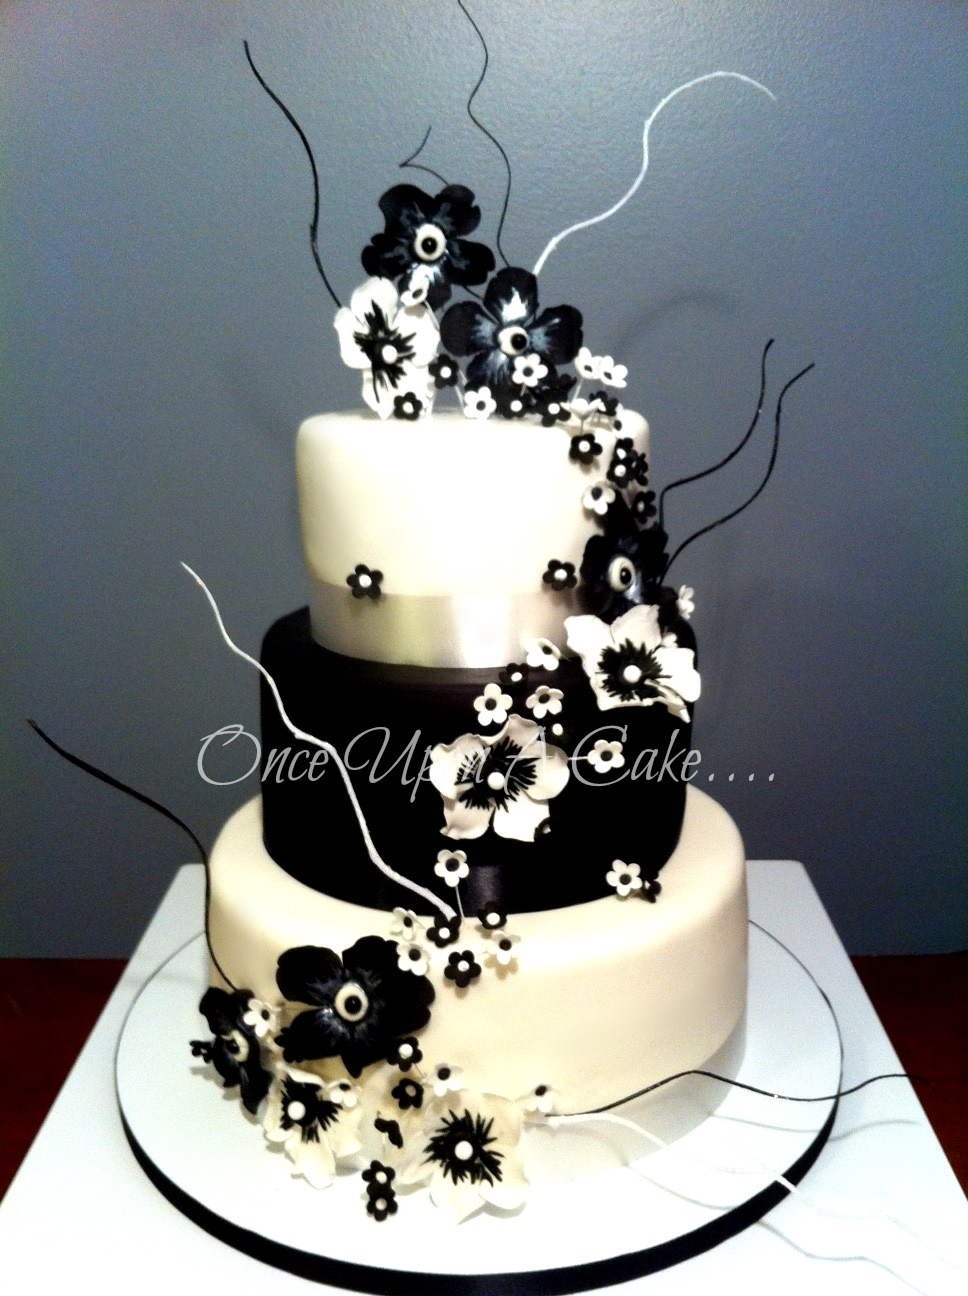 Once Upon A Cake Hotmail Com 780940 9744 Leduc Alberta Wedding